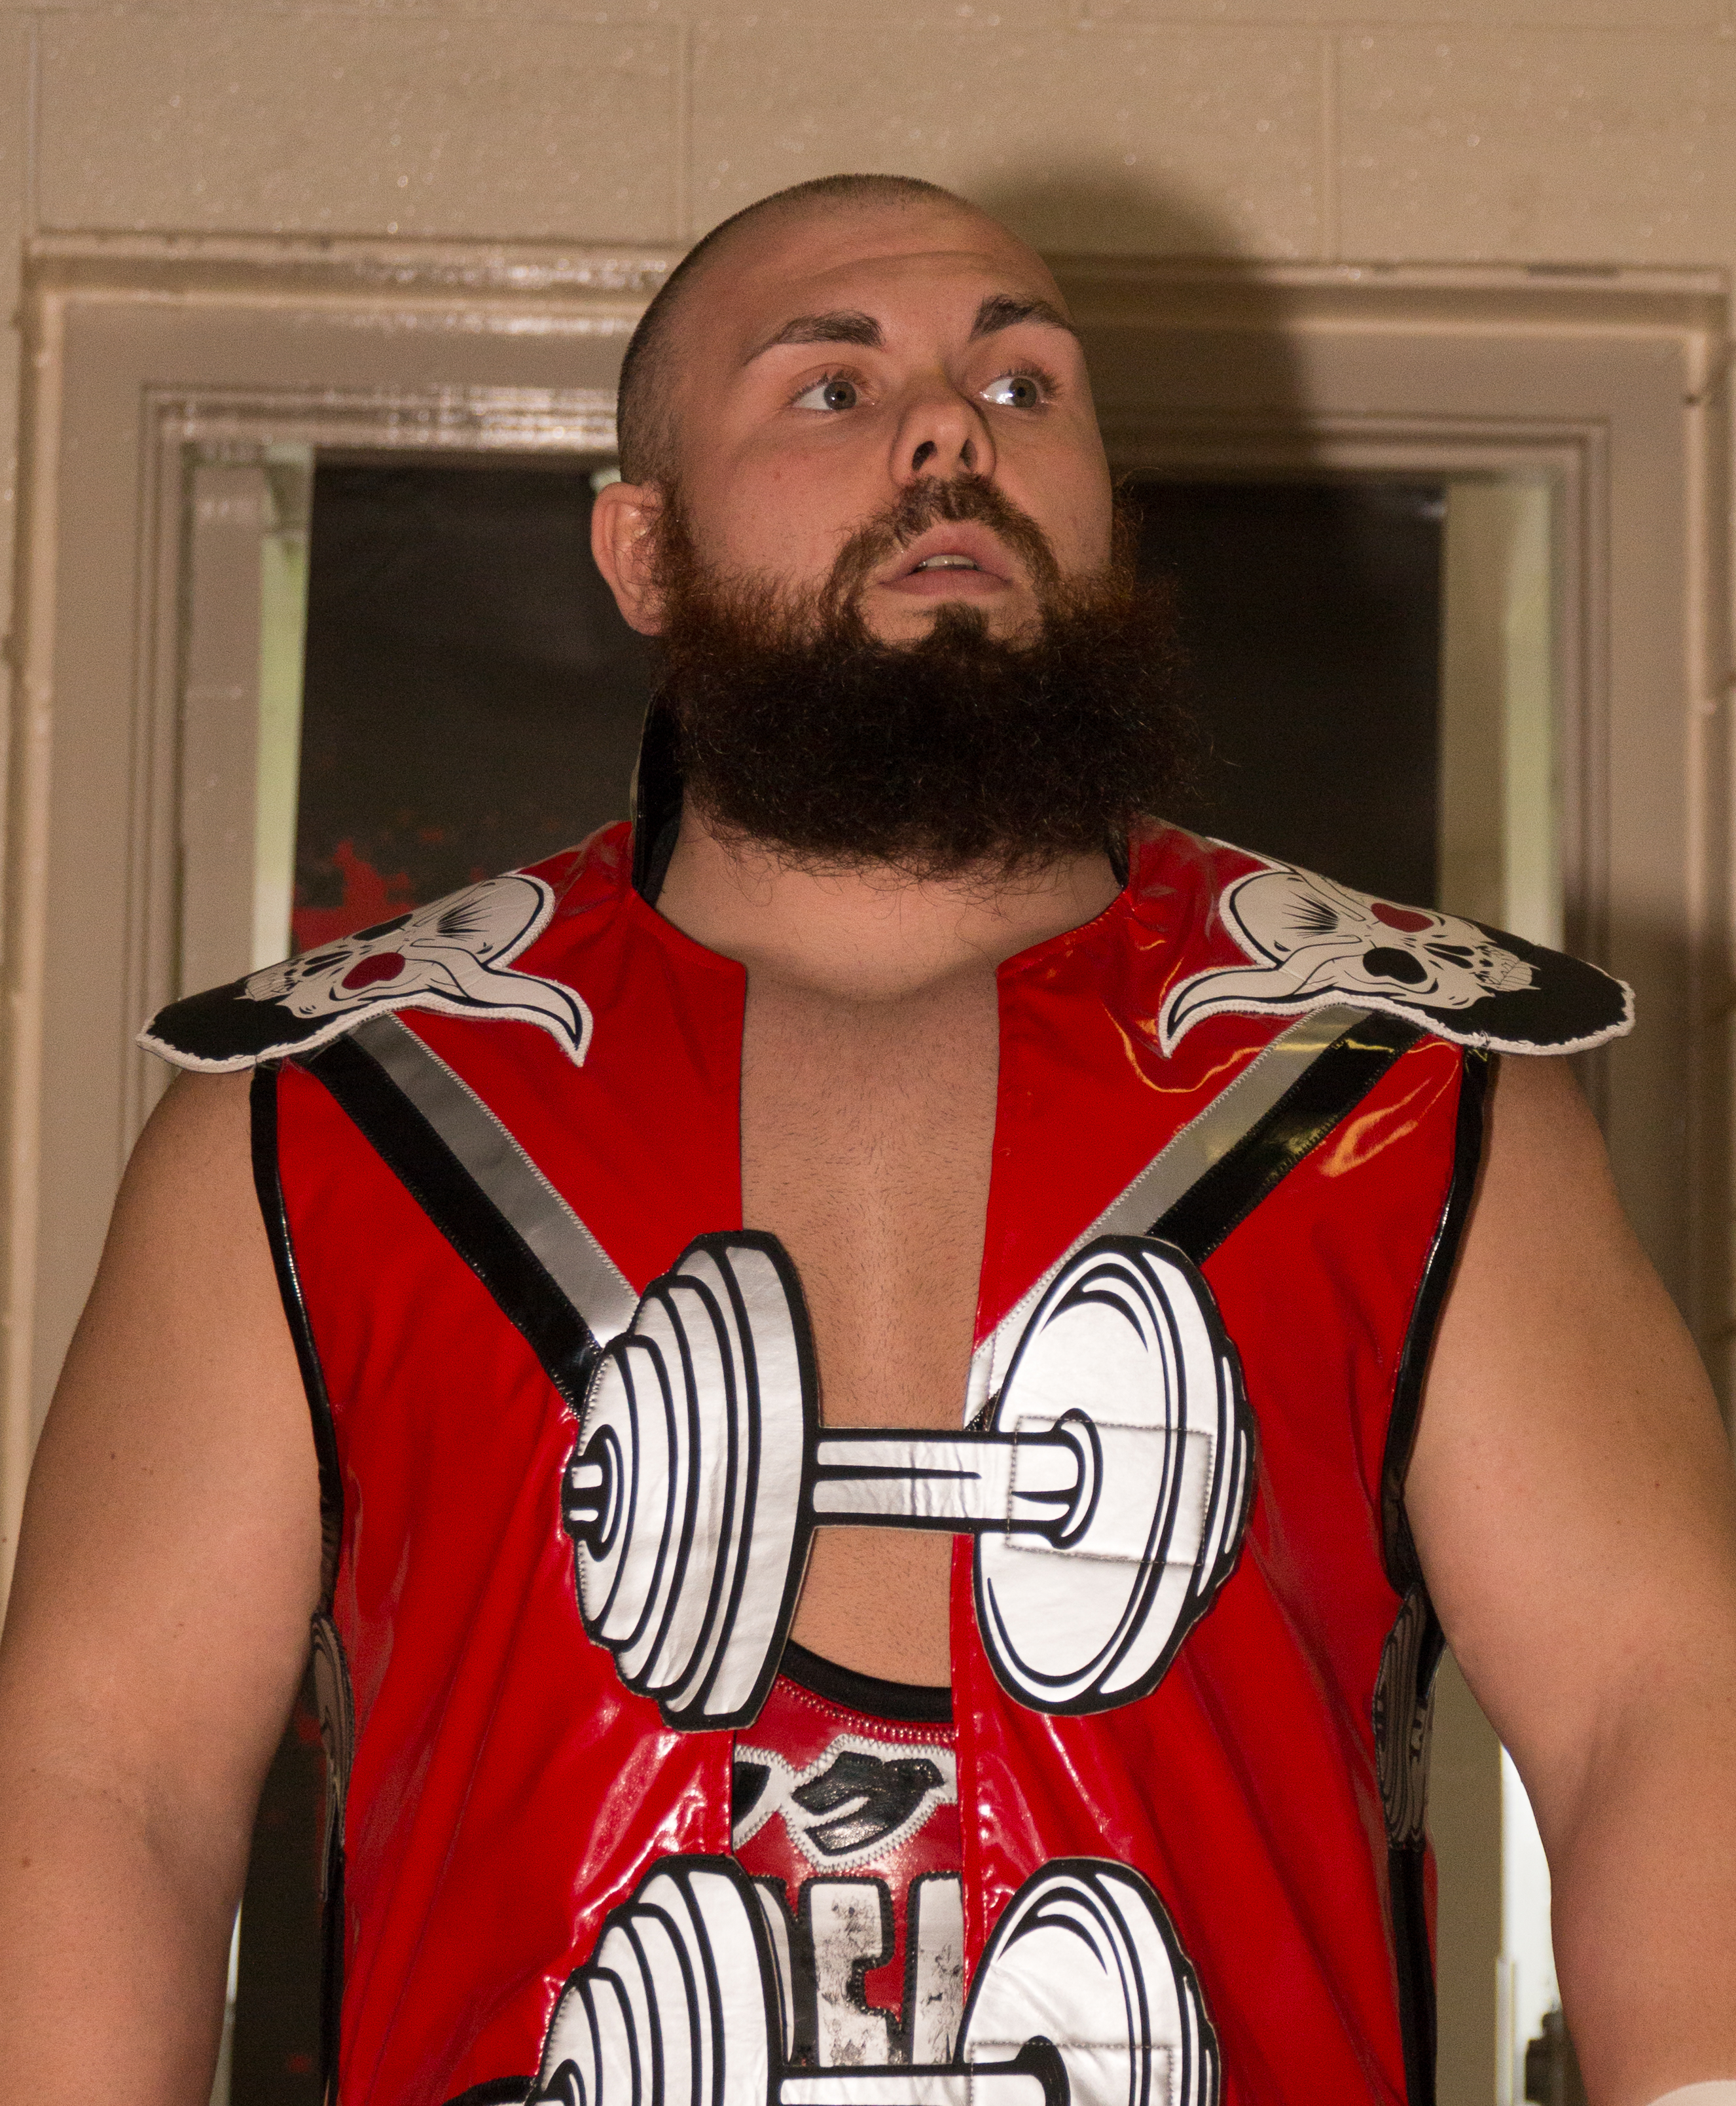 The 31-year old son of father (?) and mother(?) Michael Elgin in 2018 photo. Michael Elgin earned a  million dollar salary - leaving the net worth at 6.7 million in 2018